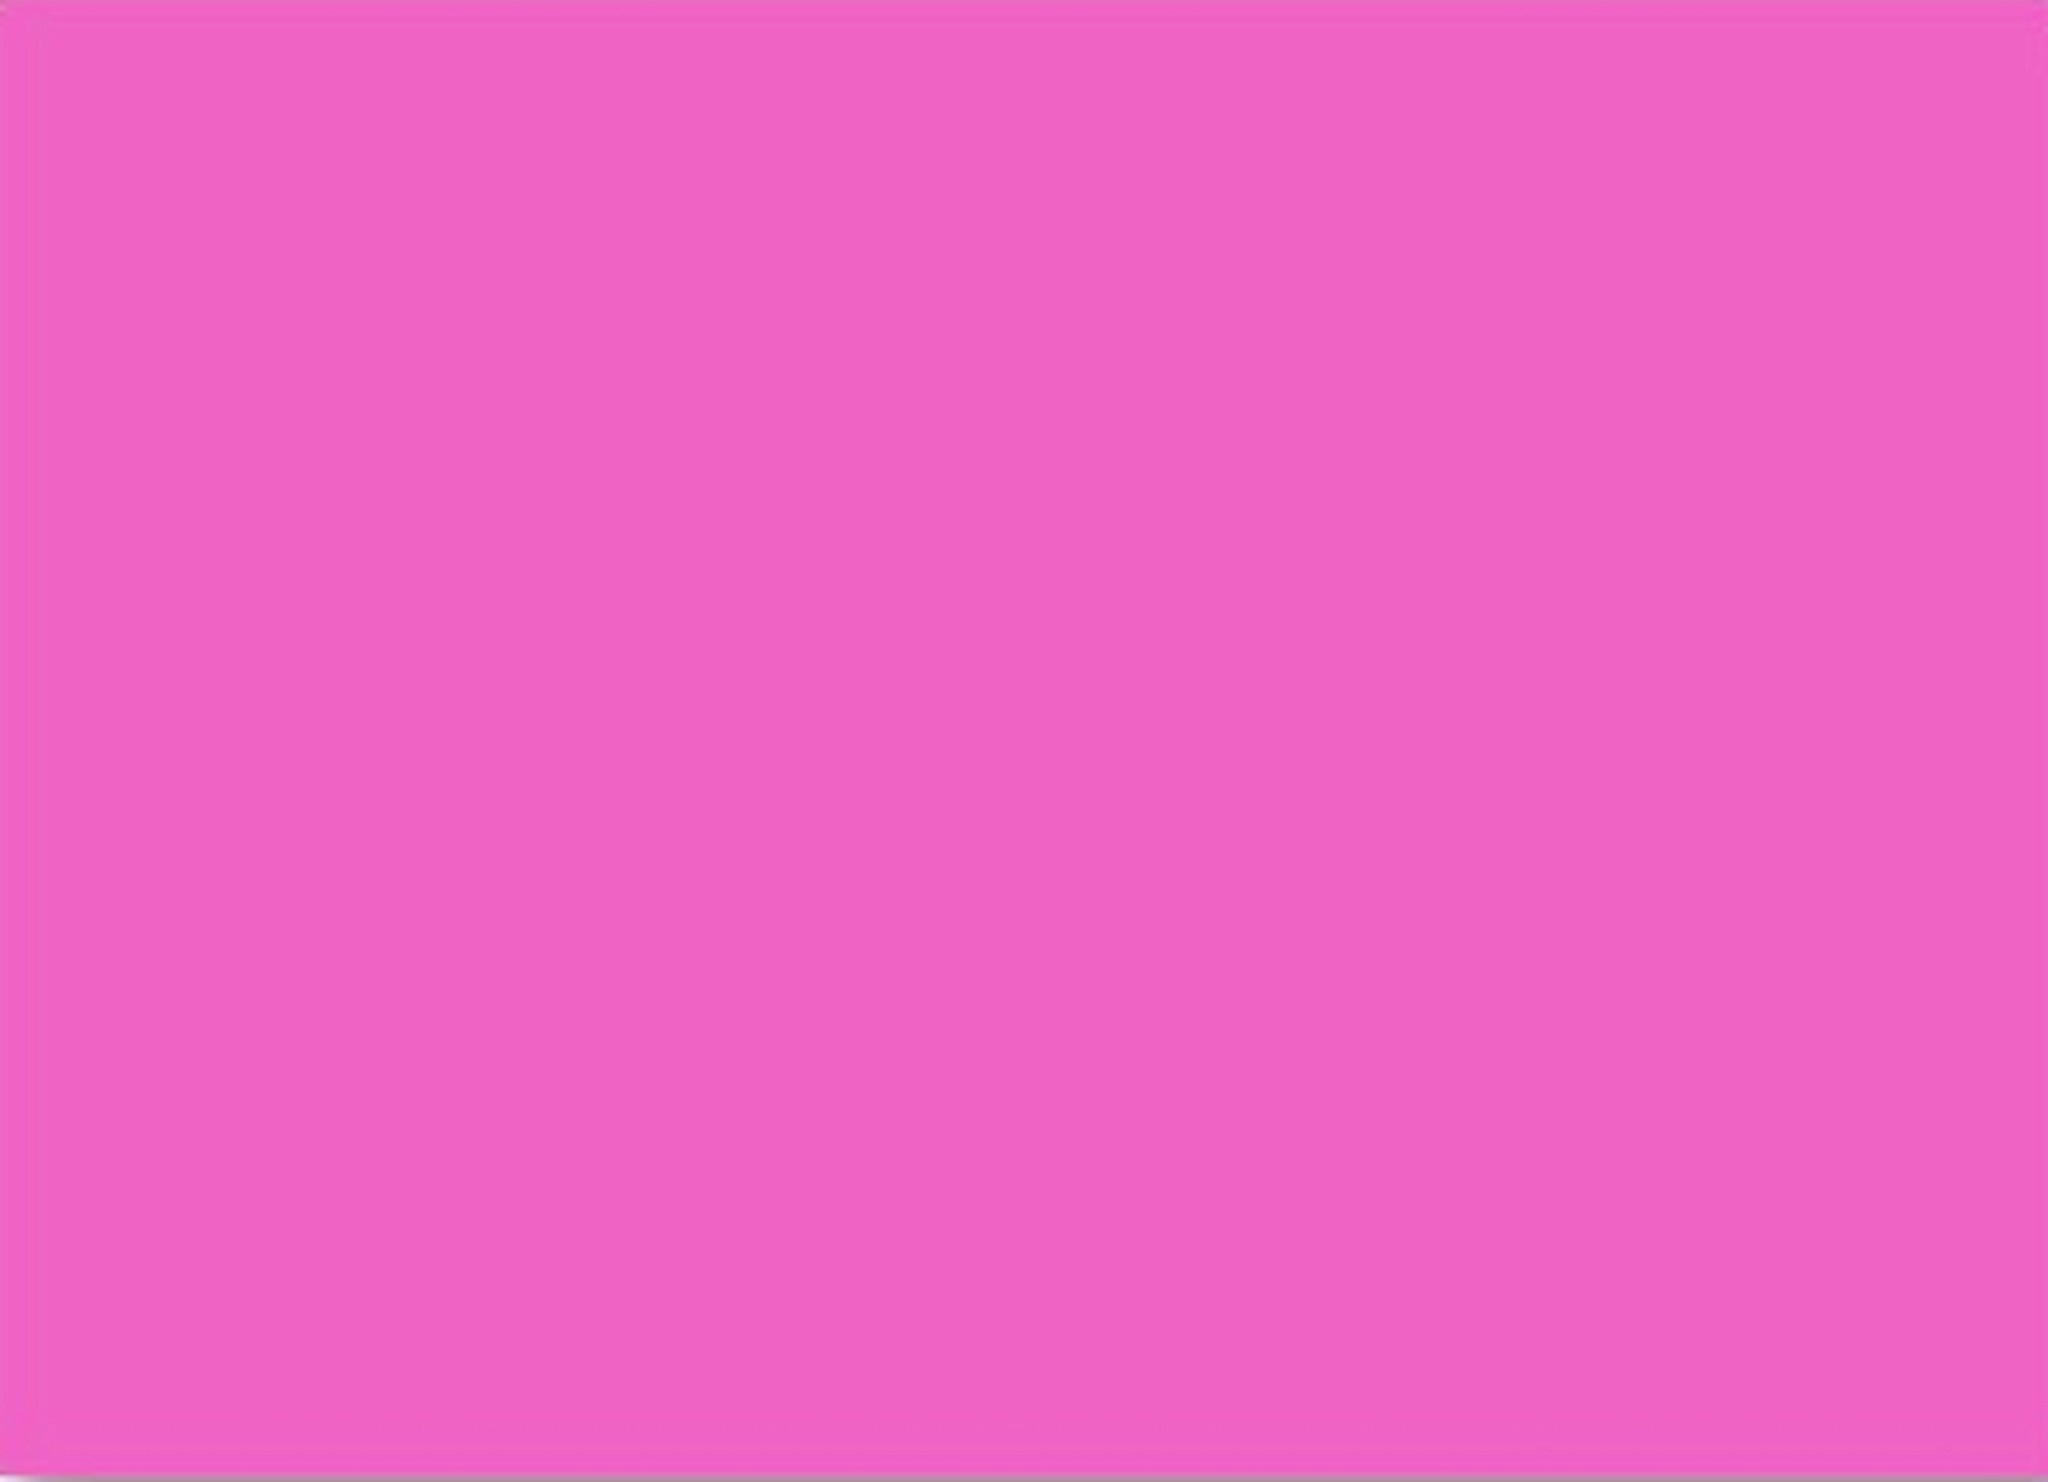 Plain Neon Pink Backgrounds For   plain neon pink 2048x1482